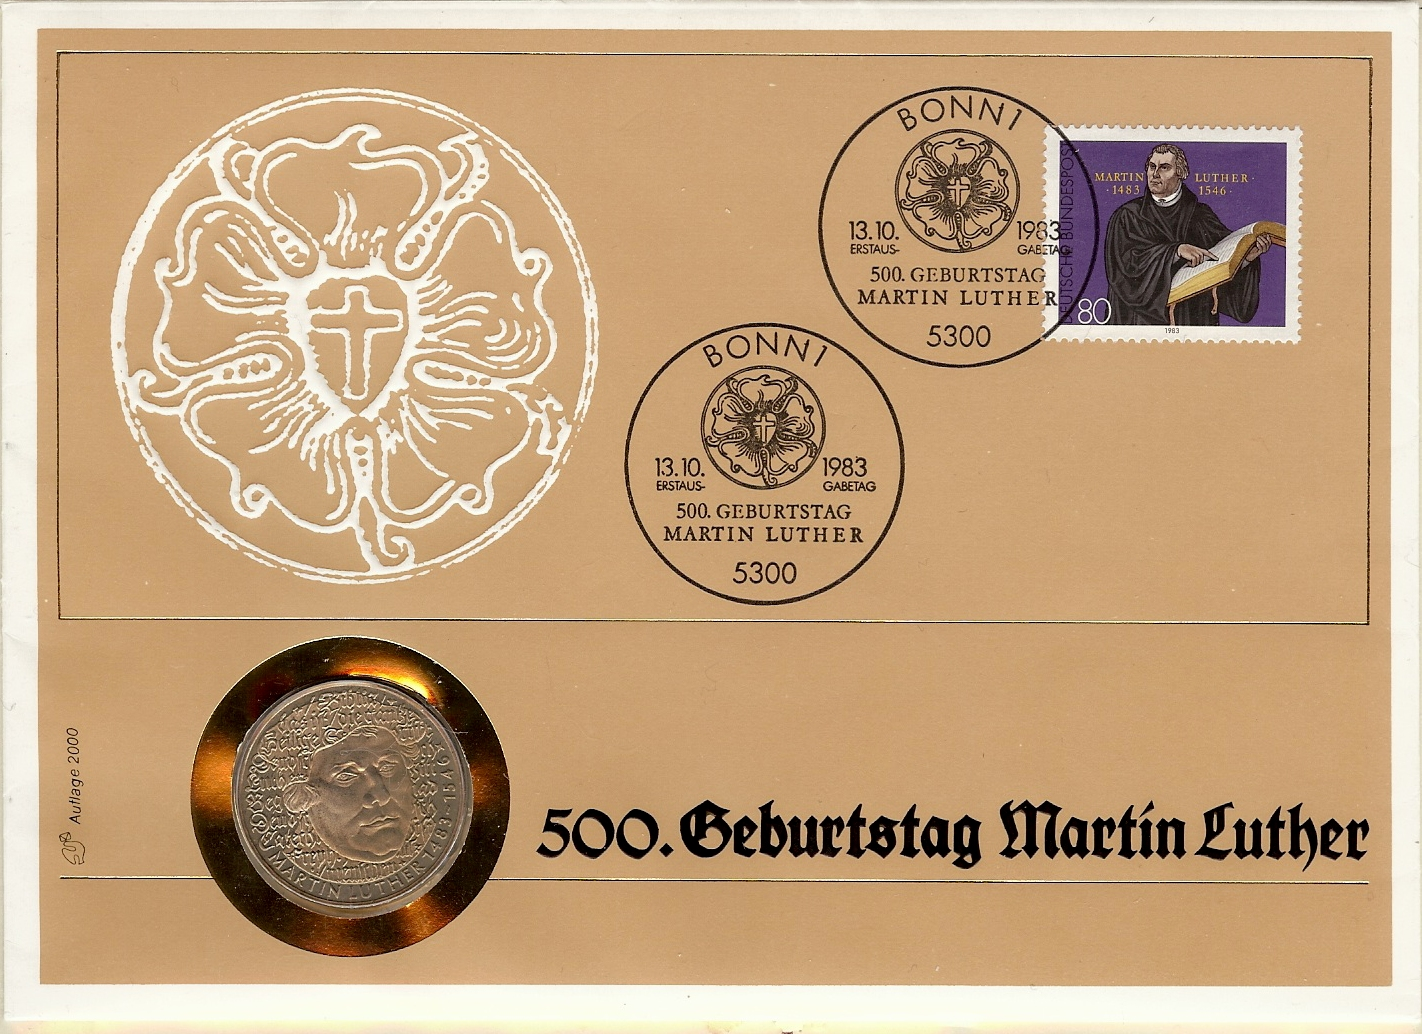 1983.10.13_BRD_FDC_Michel_1193_MARTIN LUTHER WORBES NR. 42